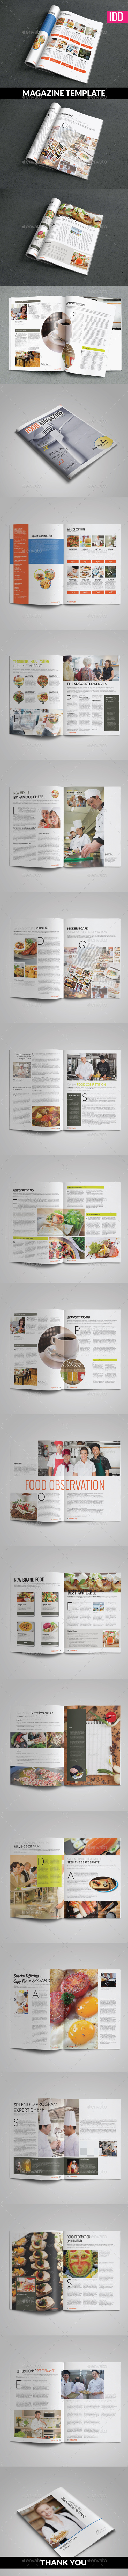 GraphicRiver 32 Pages Magazine Template 11947707